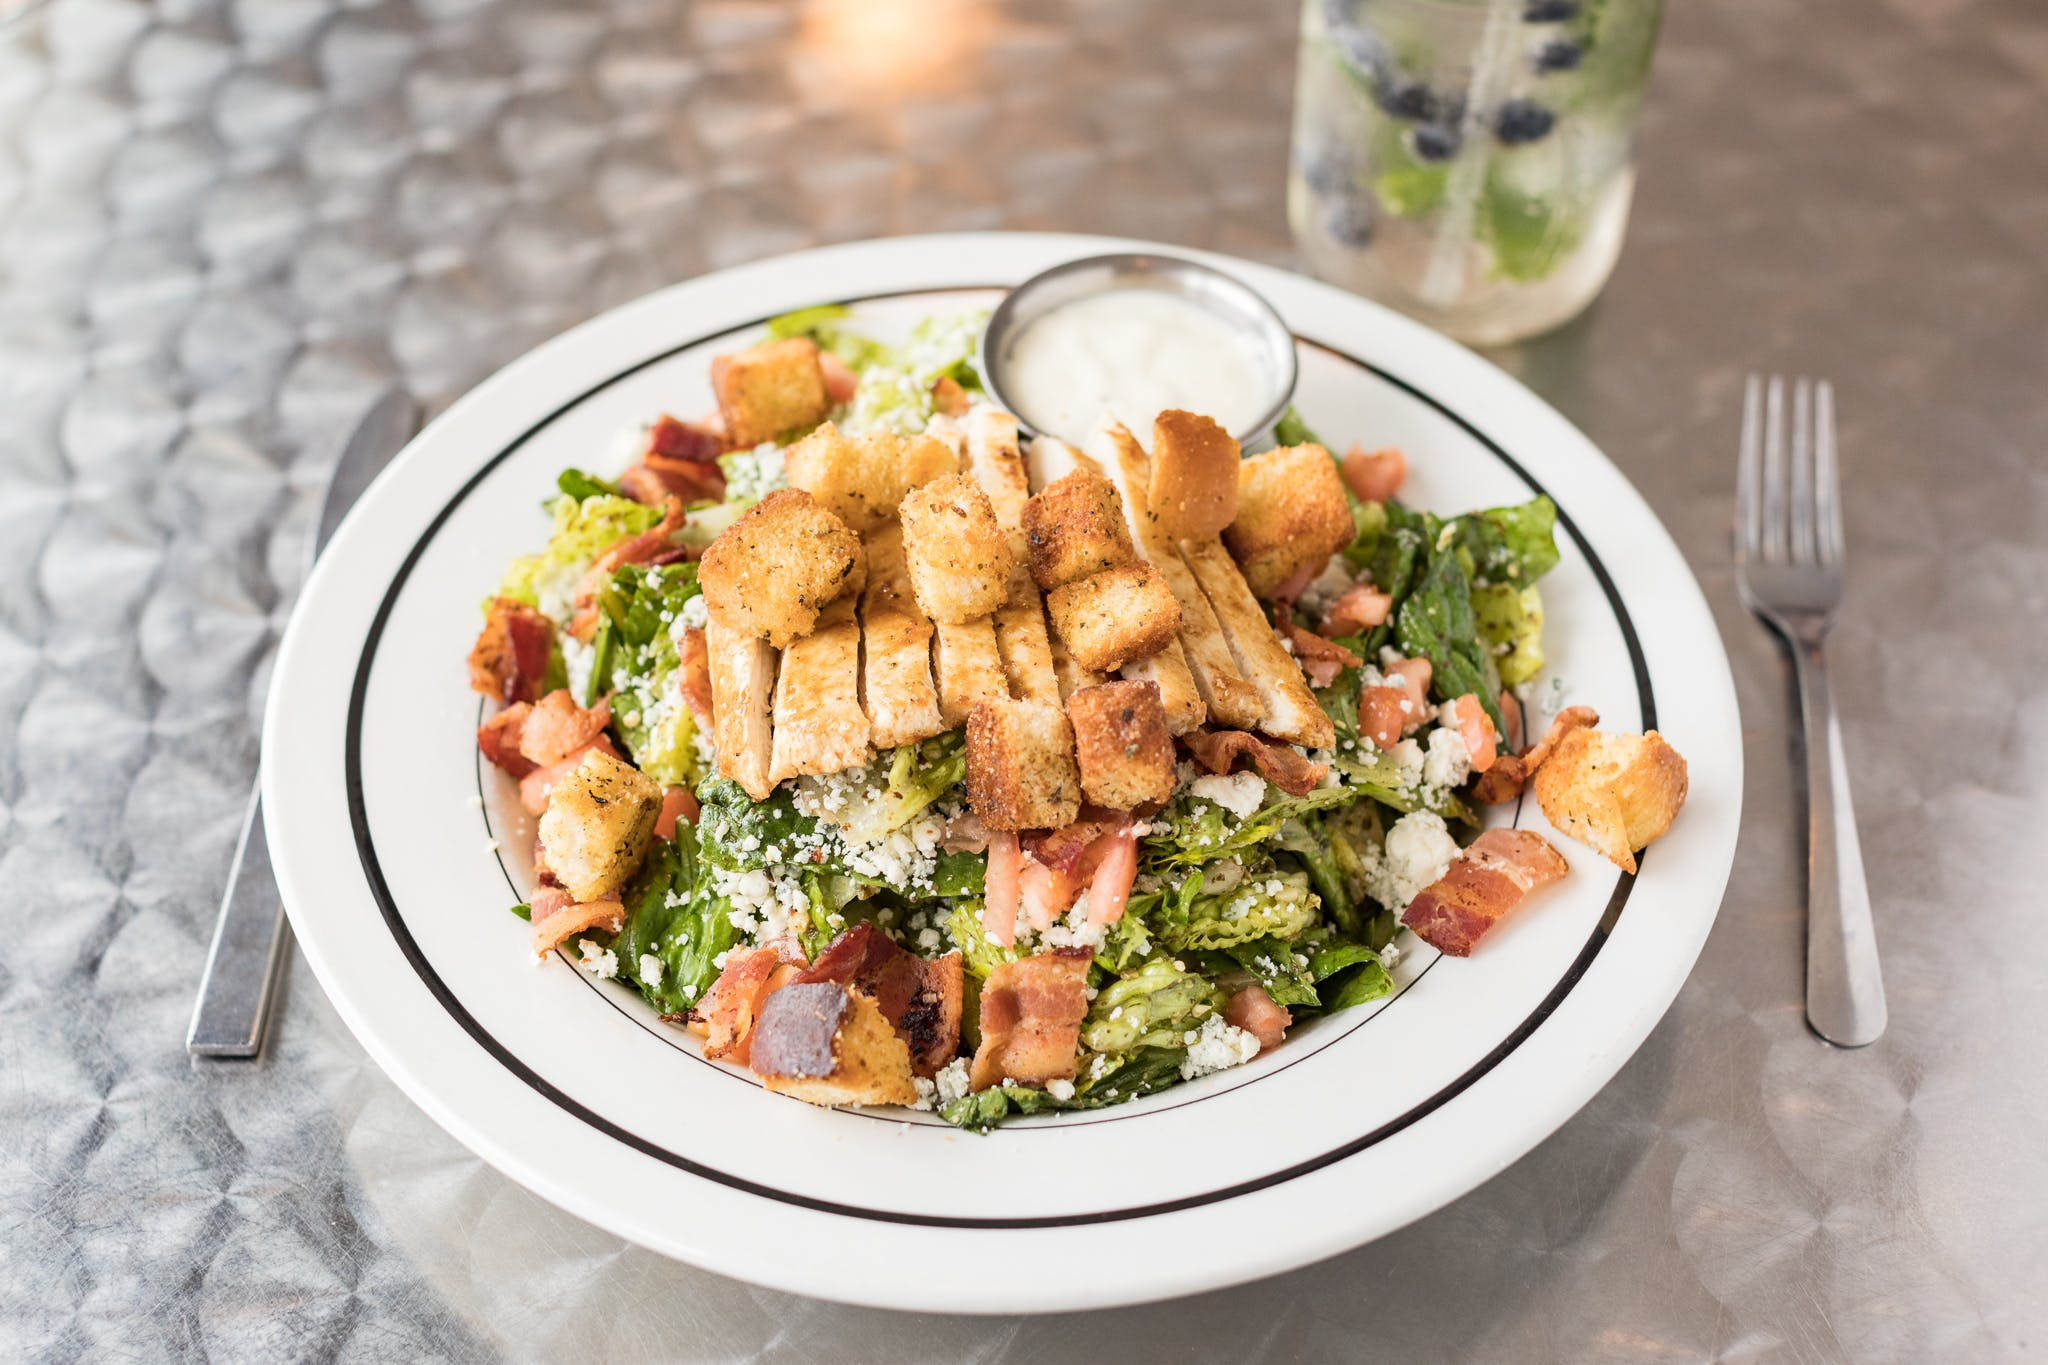 Bacon & Pesto Chicken Salad from The District Pub and Grill in Eau Claire, WI